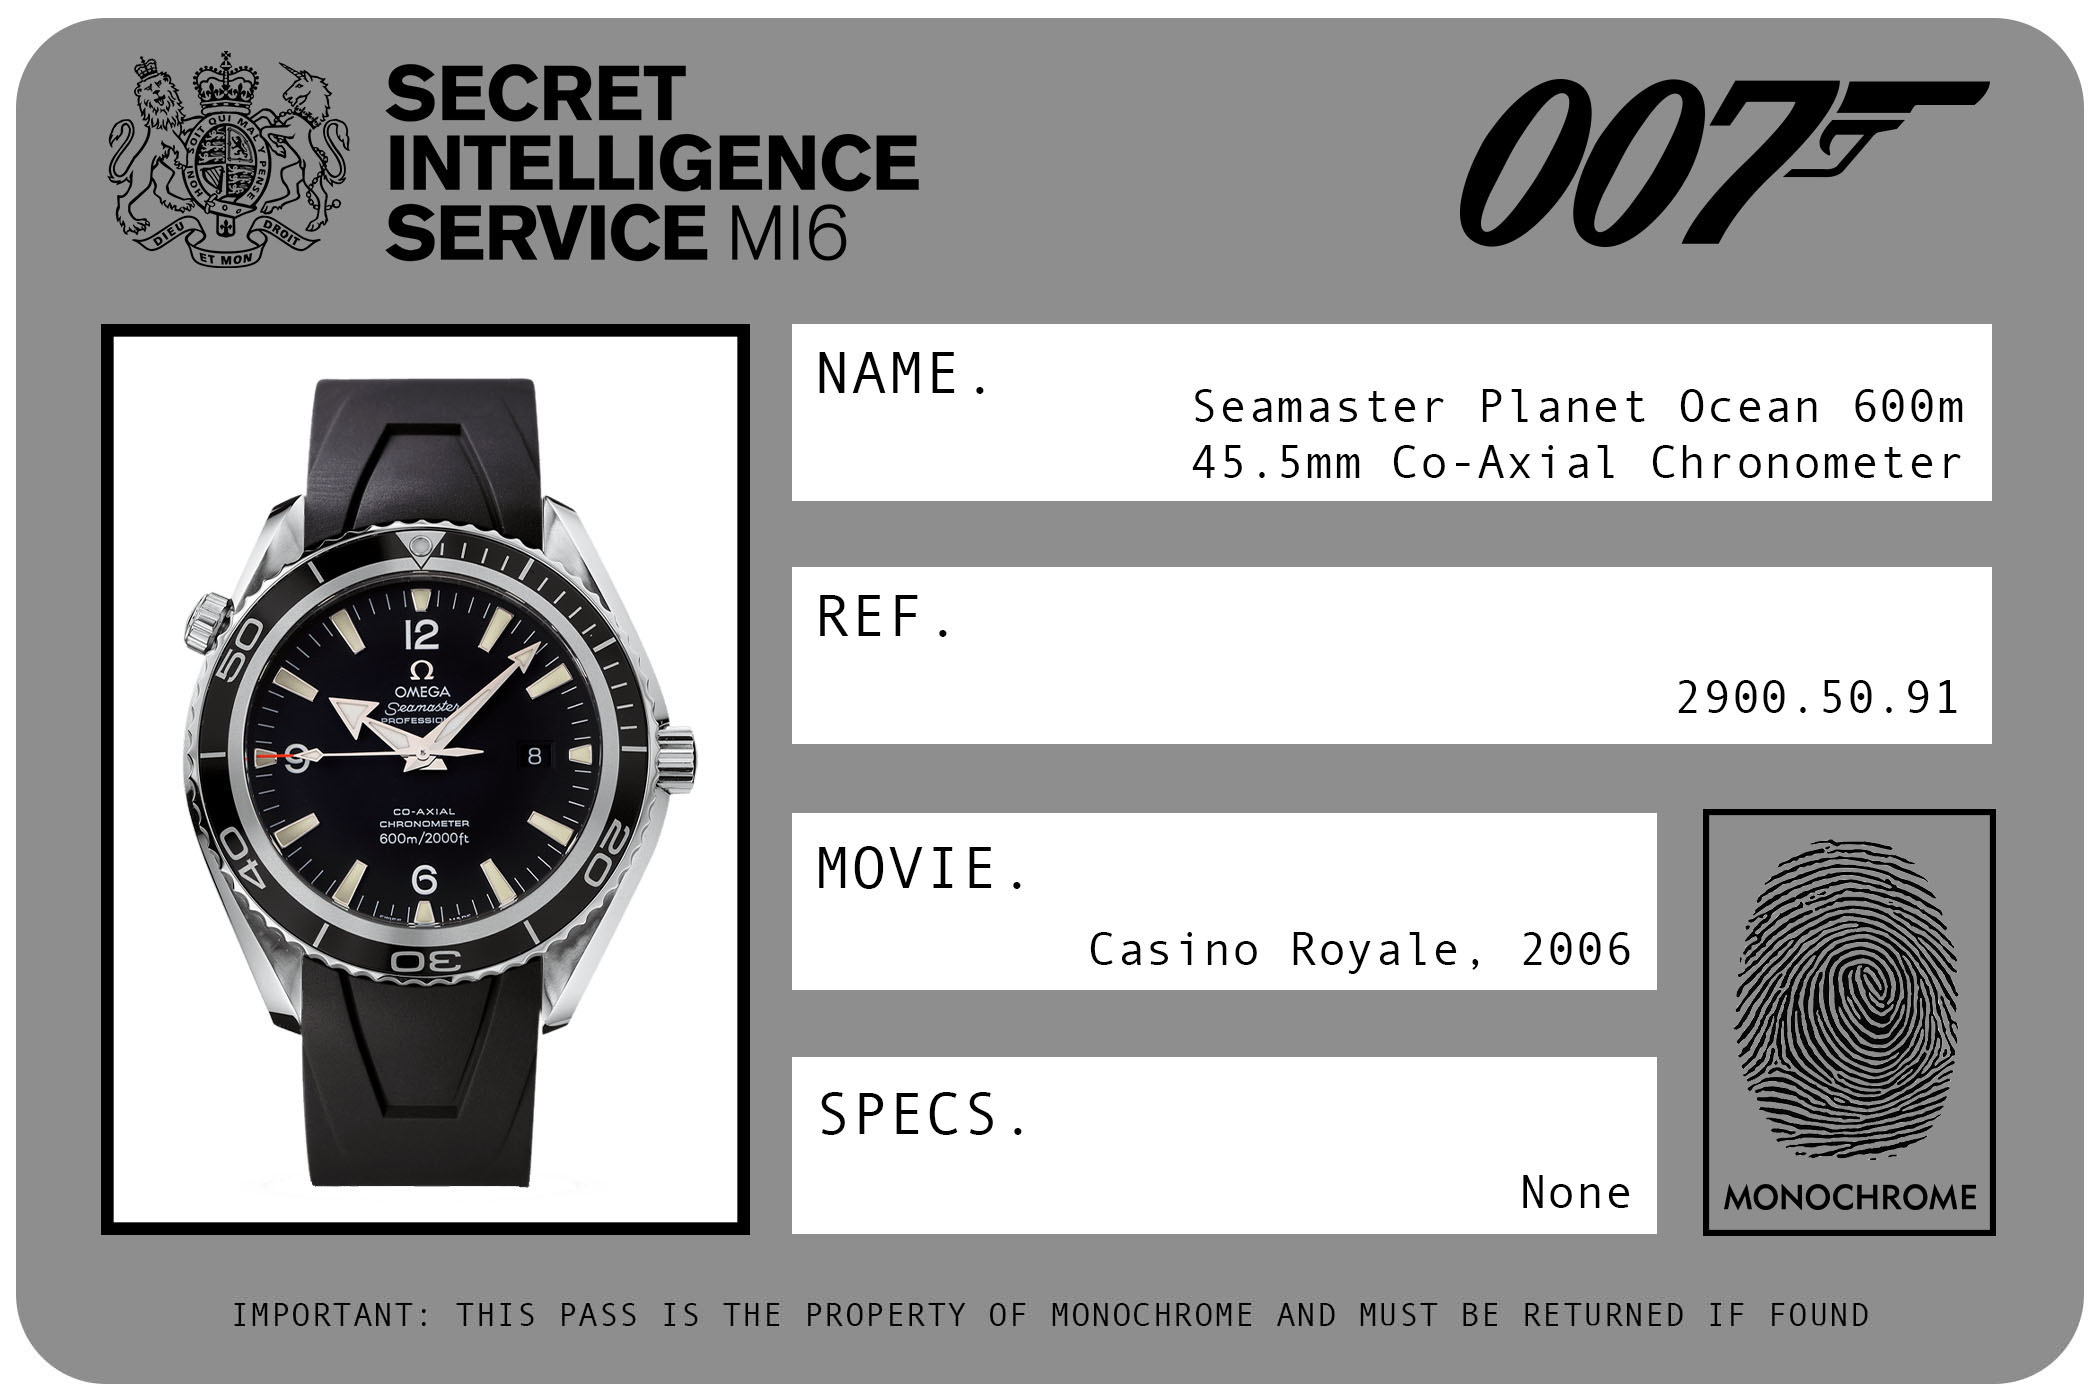 Omega Seamaster Planet Ocean 600m 45.5mm Co-Axial Chronometer 2900.50.91 James Bond Casino Royale ID Card 2006